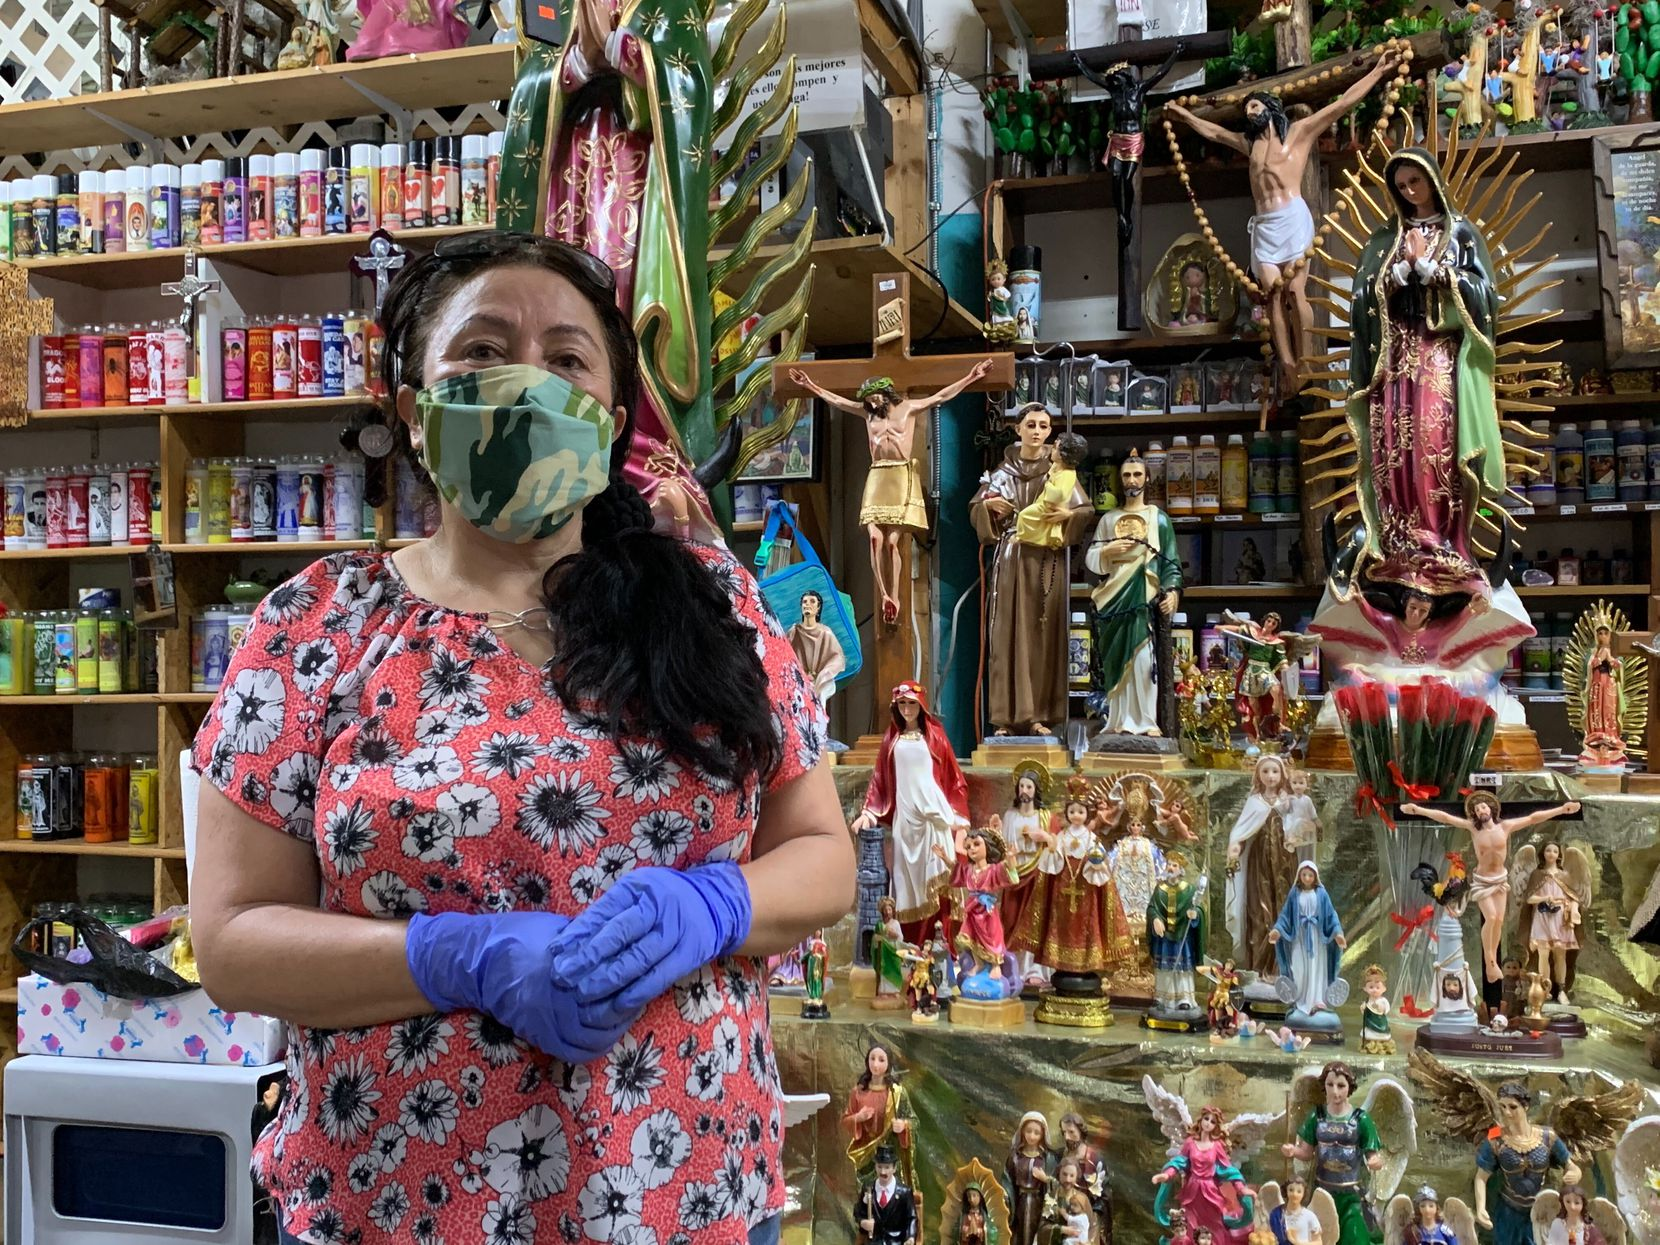 Maribel Marure, who works in northwest Dallas selling religious figurines and candles at her shop, poses for a photo Friday.